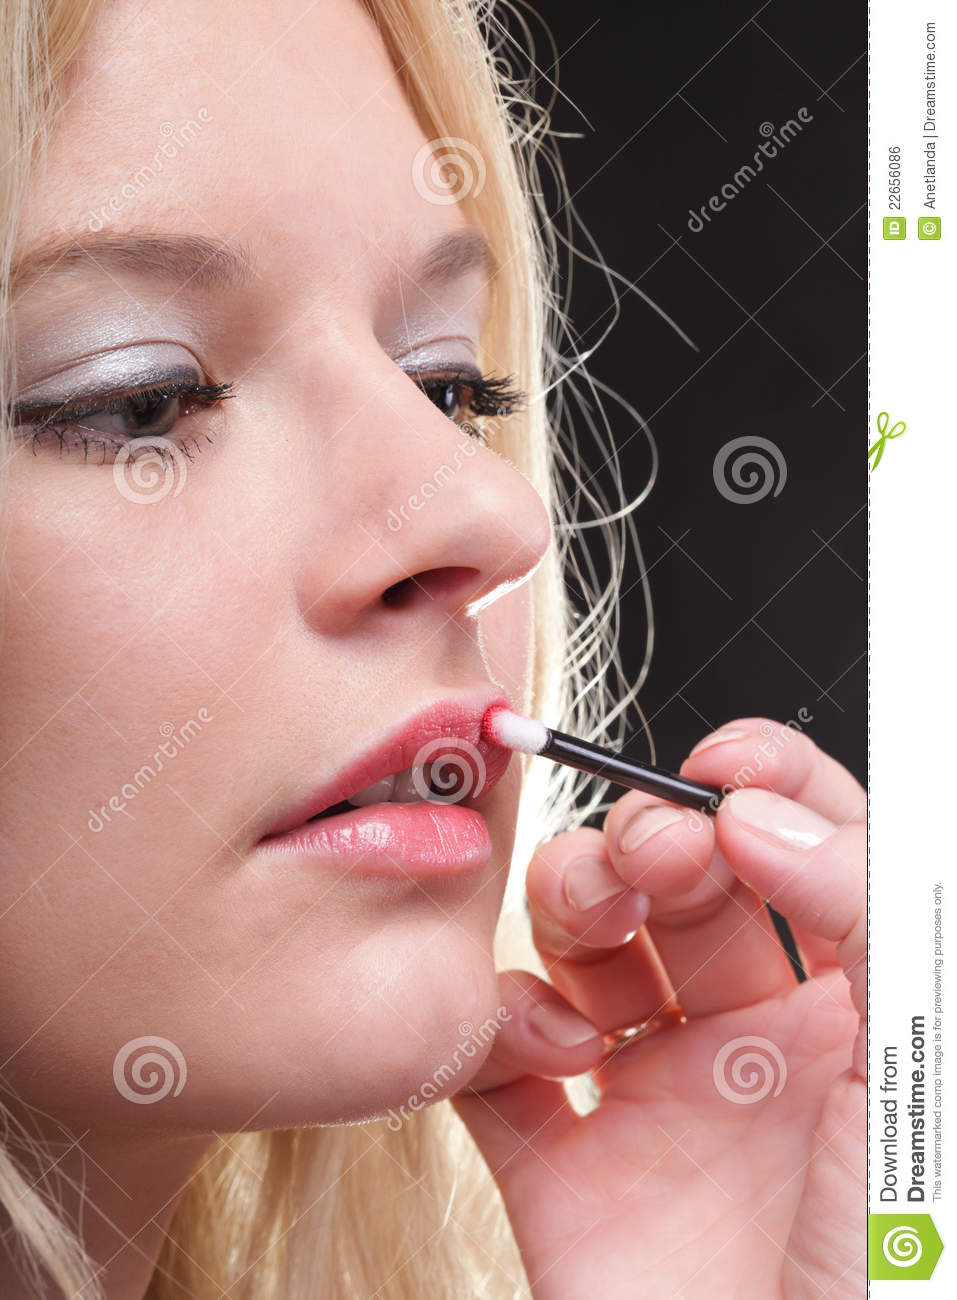 Beautiful Woman Putting On Makeup Royalty Free Stock Image